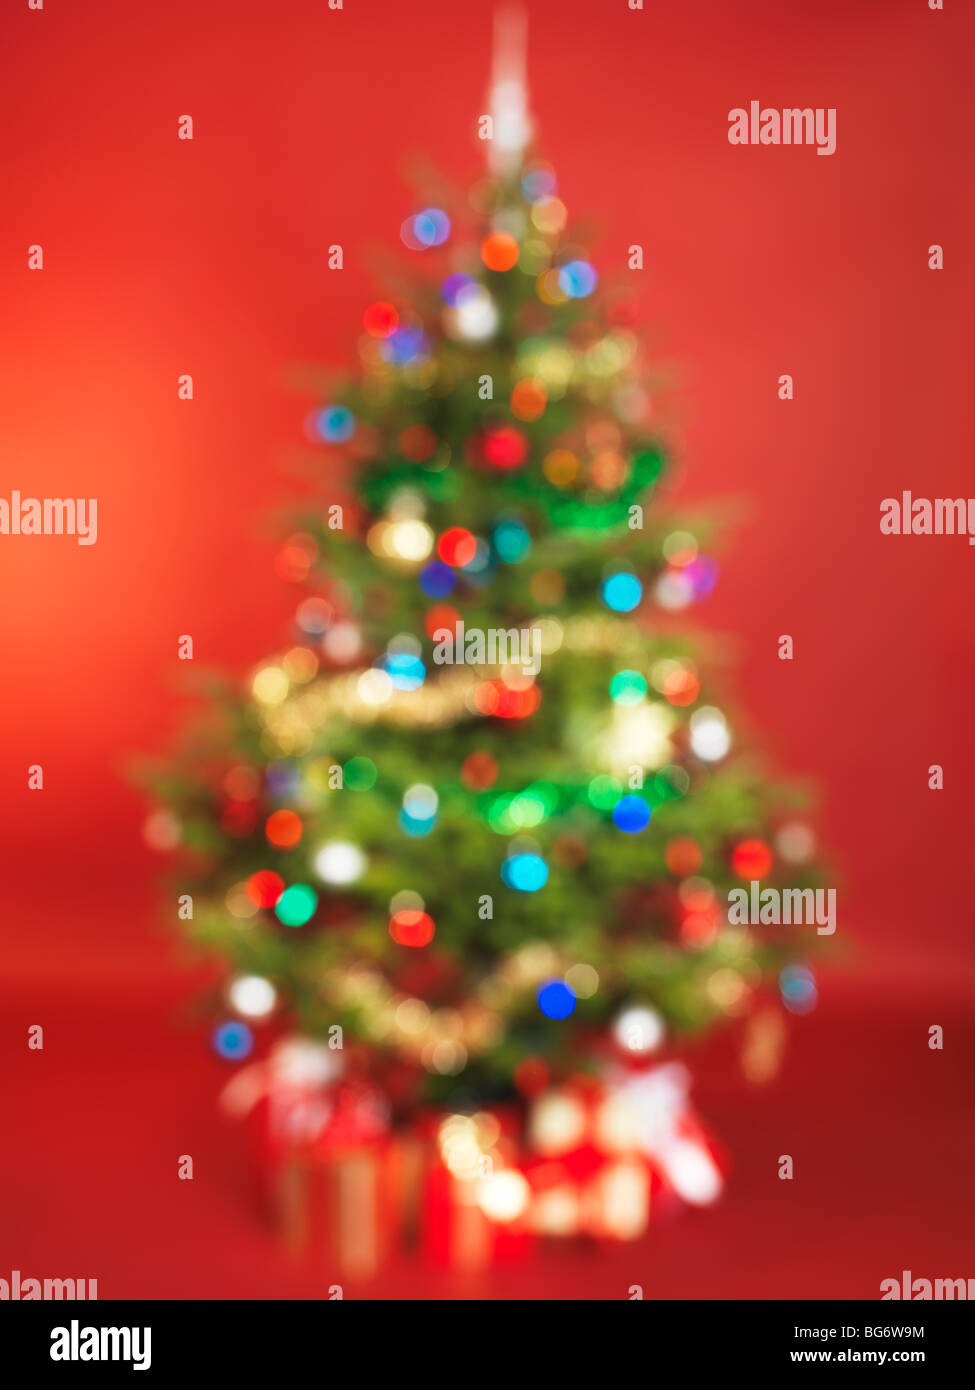 Out of focus decorated Christmas tree isolated on red background Stock Photo